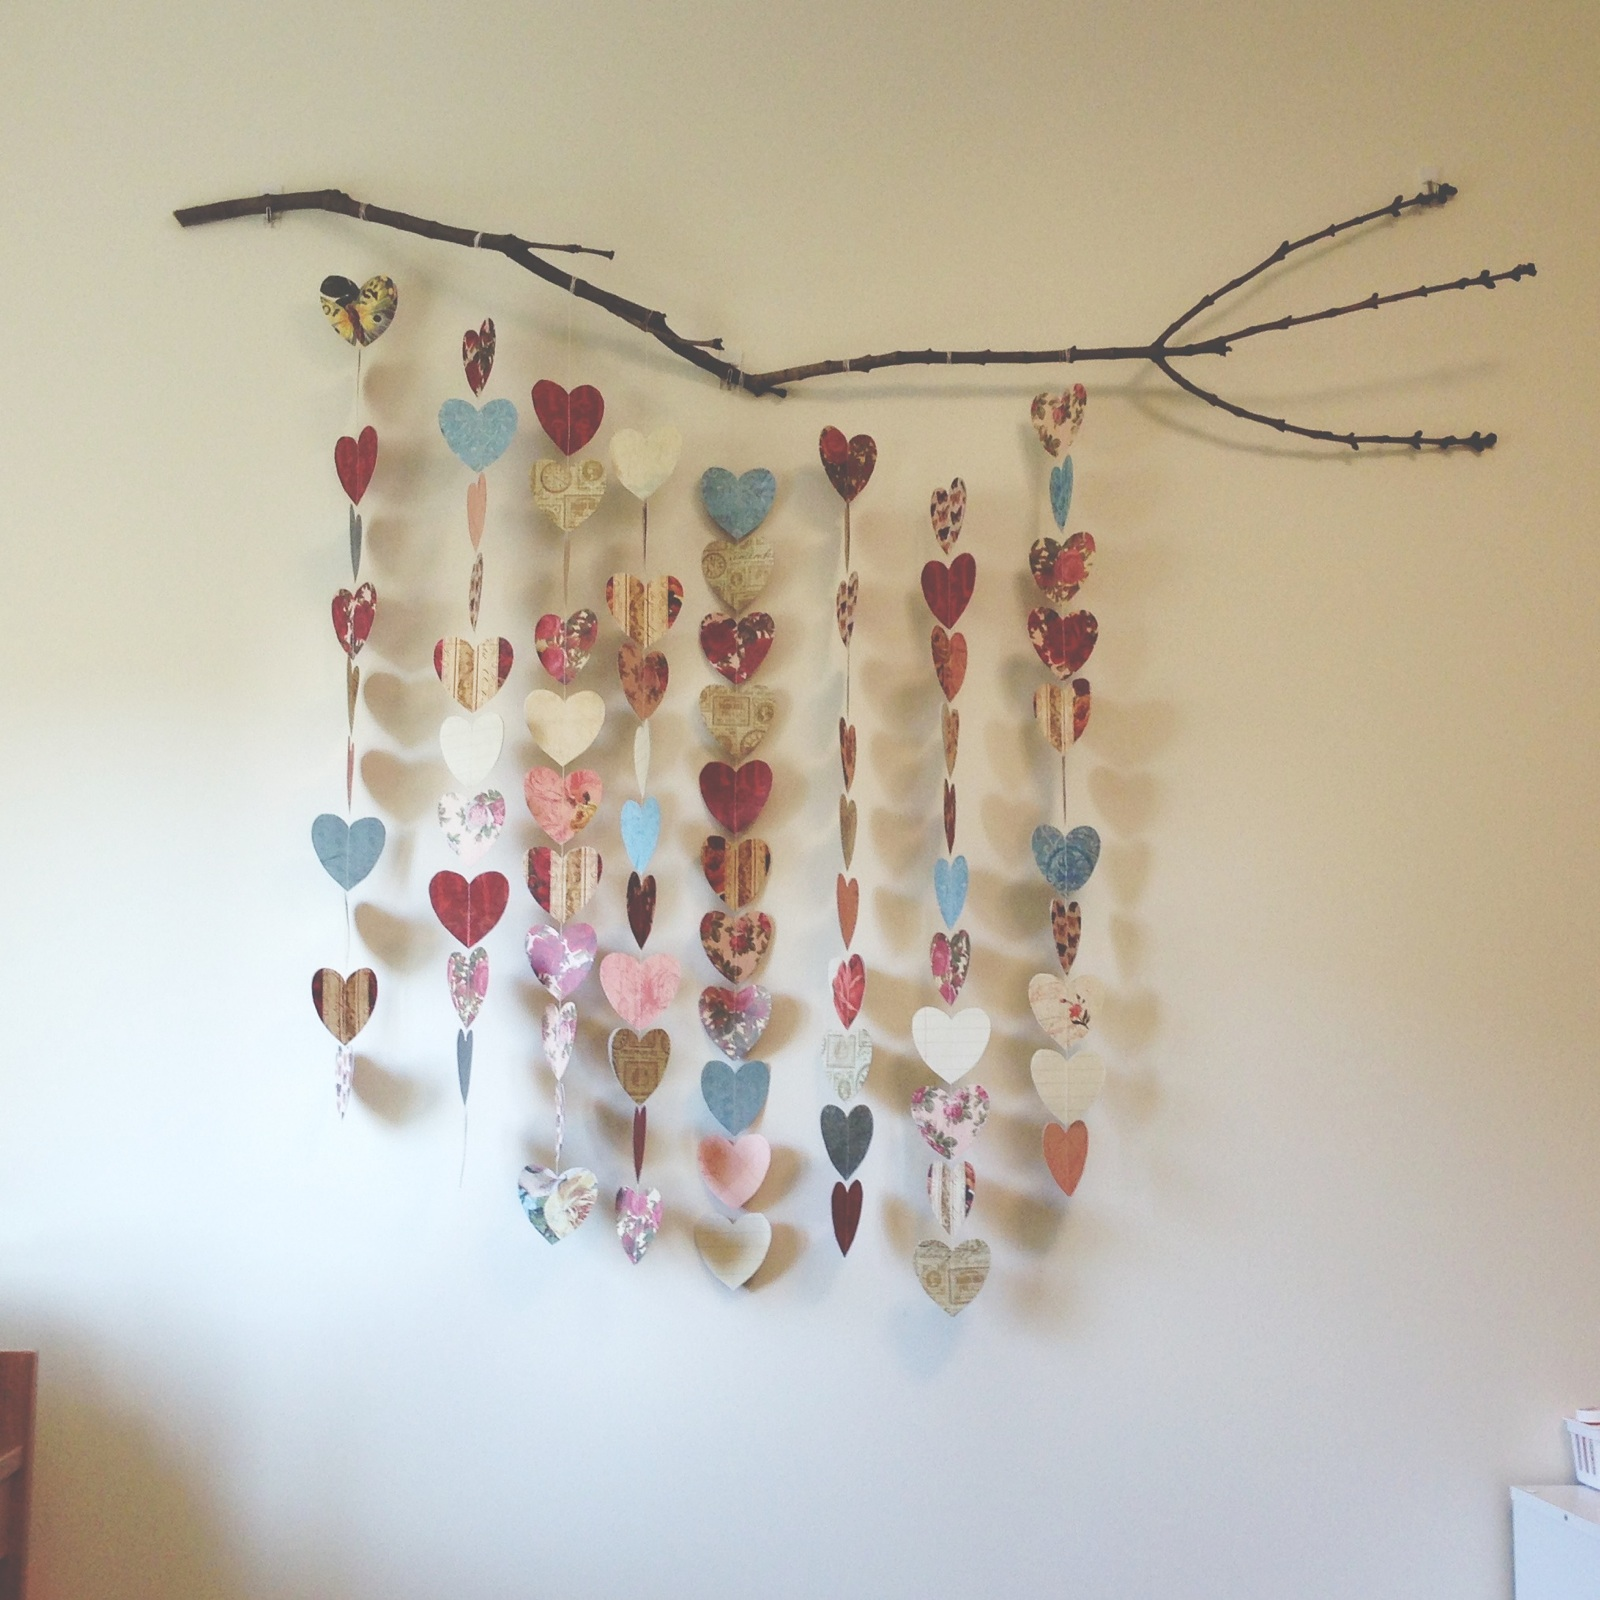 i wanna major in crafts tree branch and paper hearts